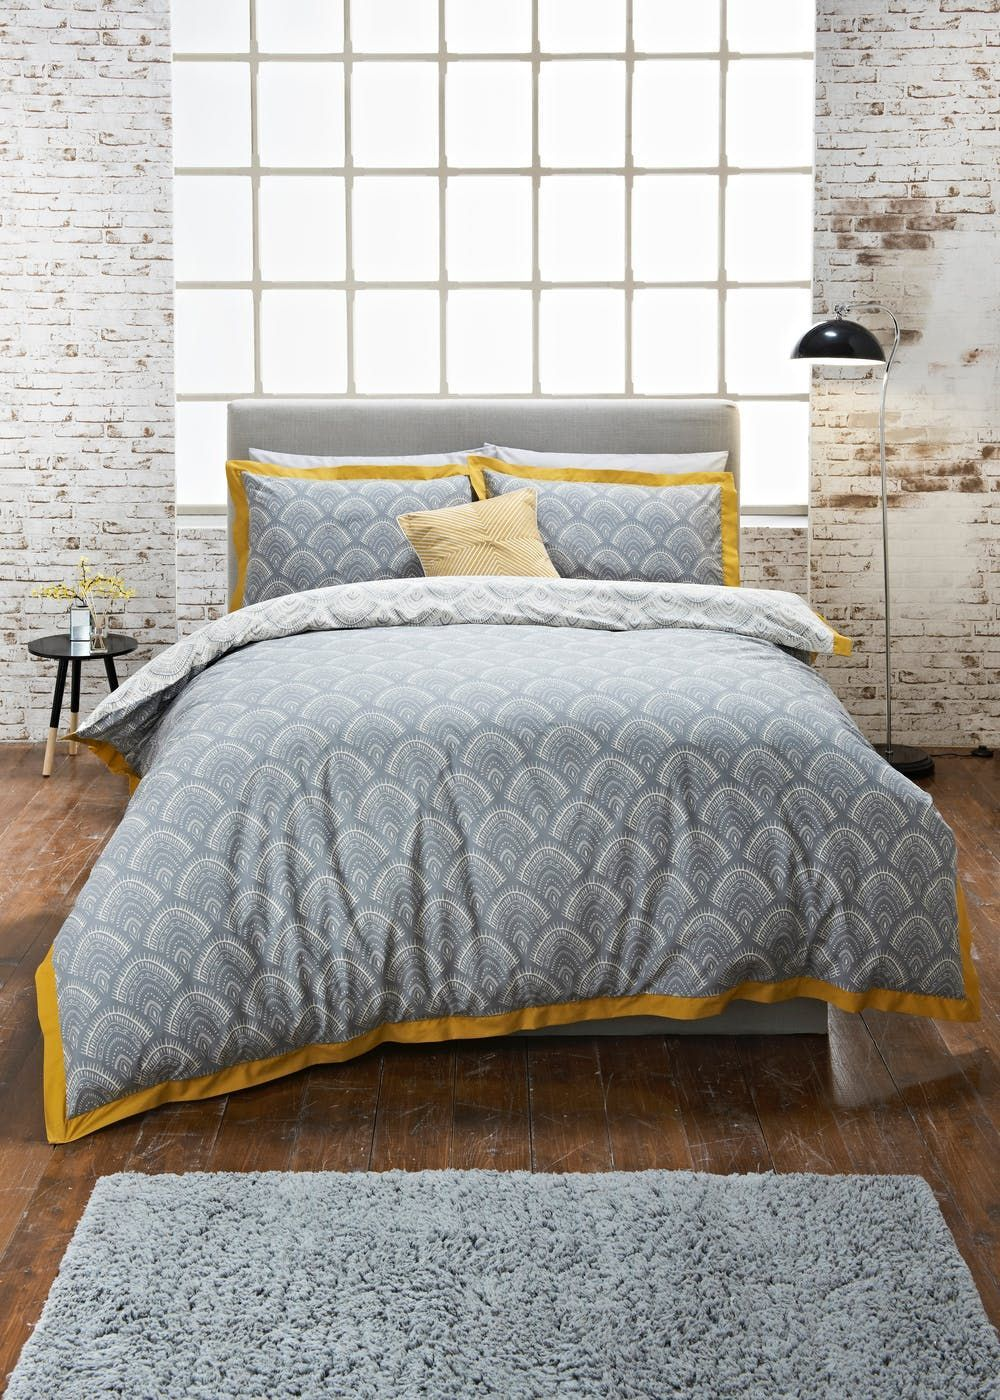 Our Stylish Fan Printed Duvet Cover In Grey Features A